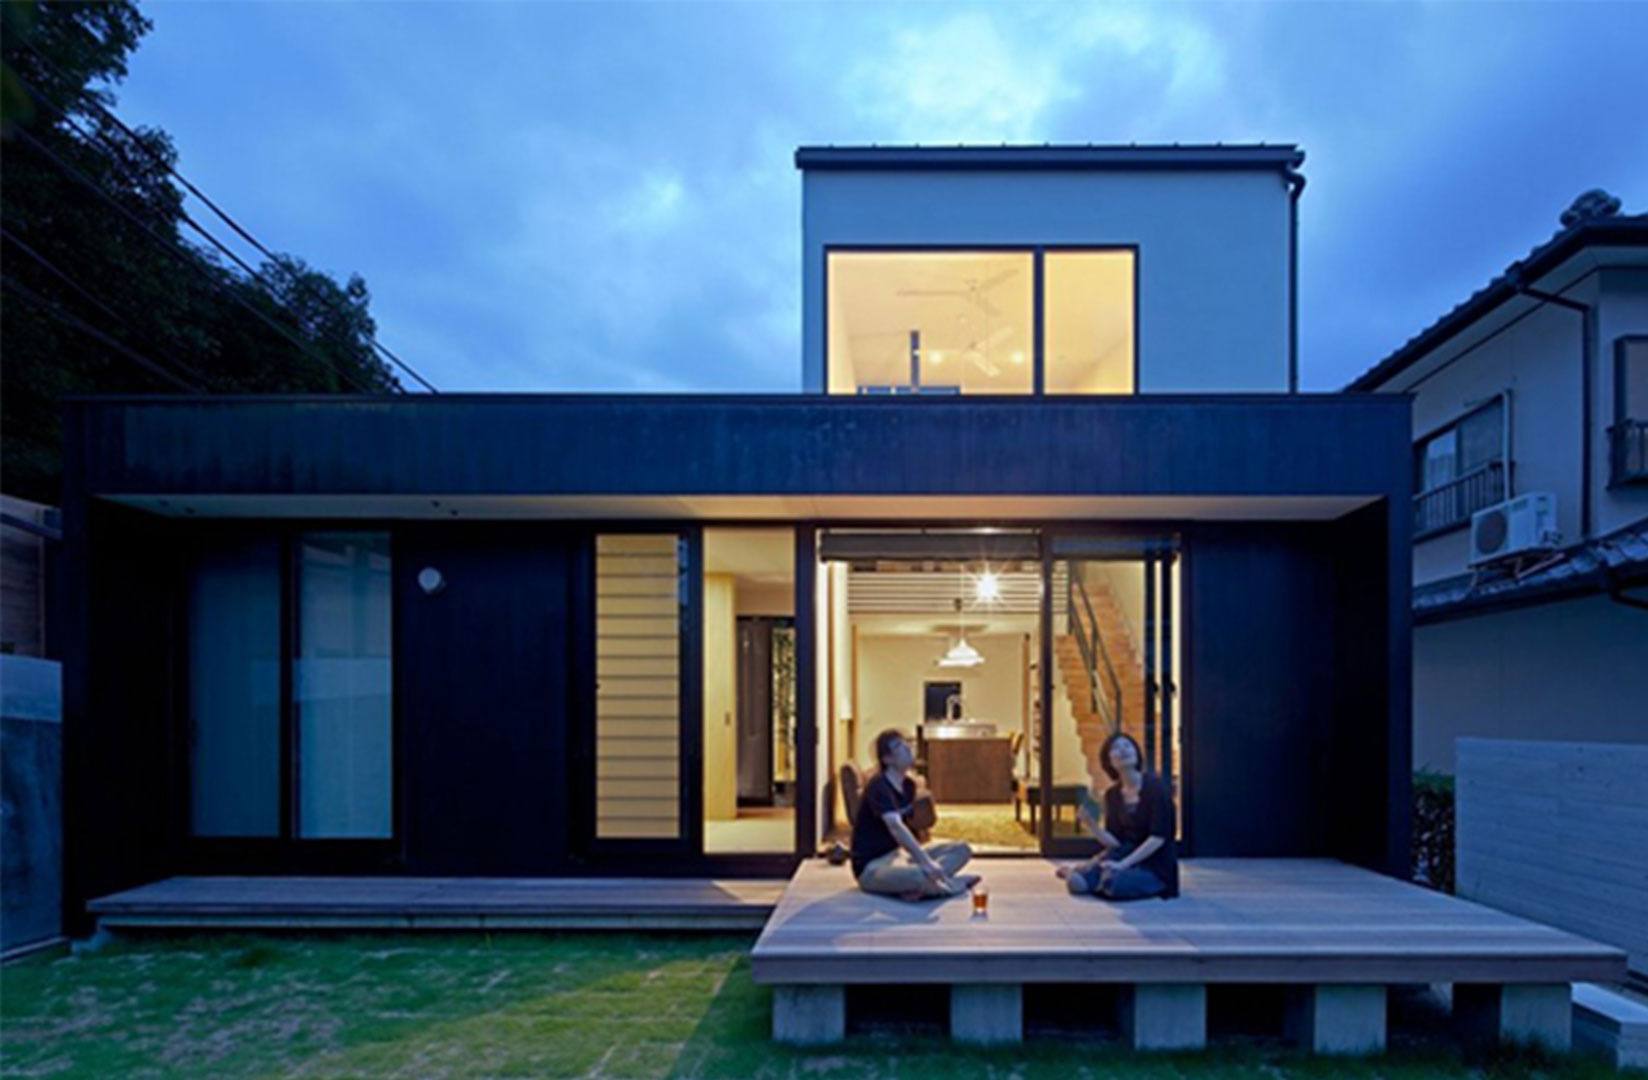 Choose Minimalist Home Design Ideas with Simple Wooden Deck and Flat Roof near Green Grass Yard